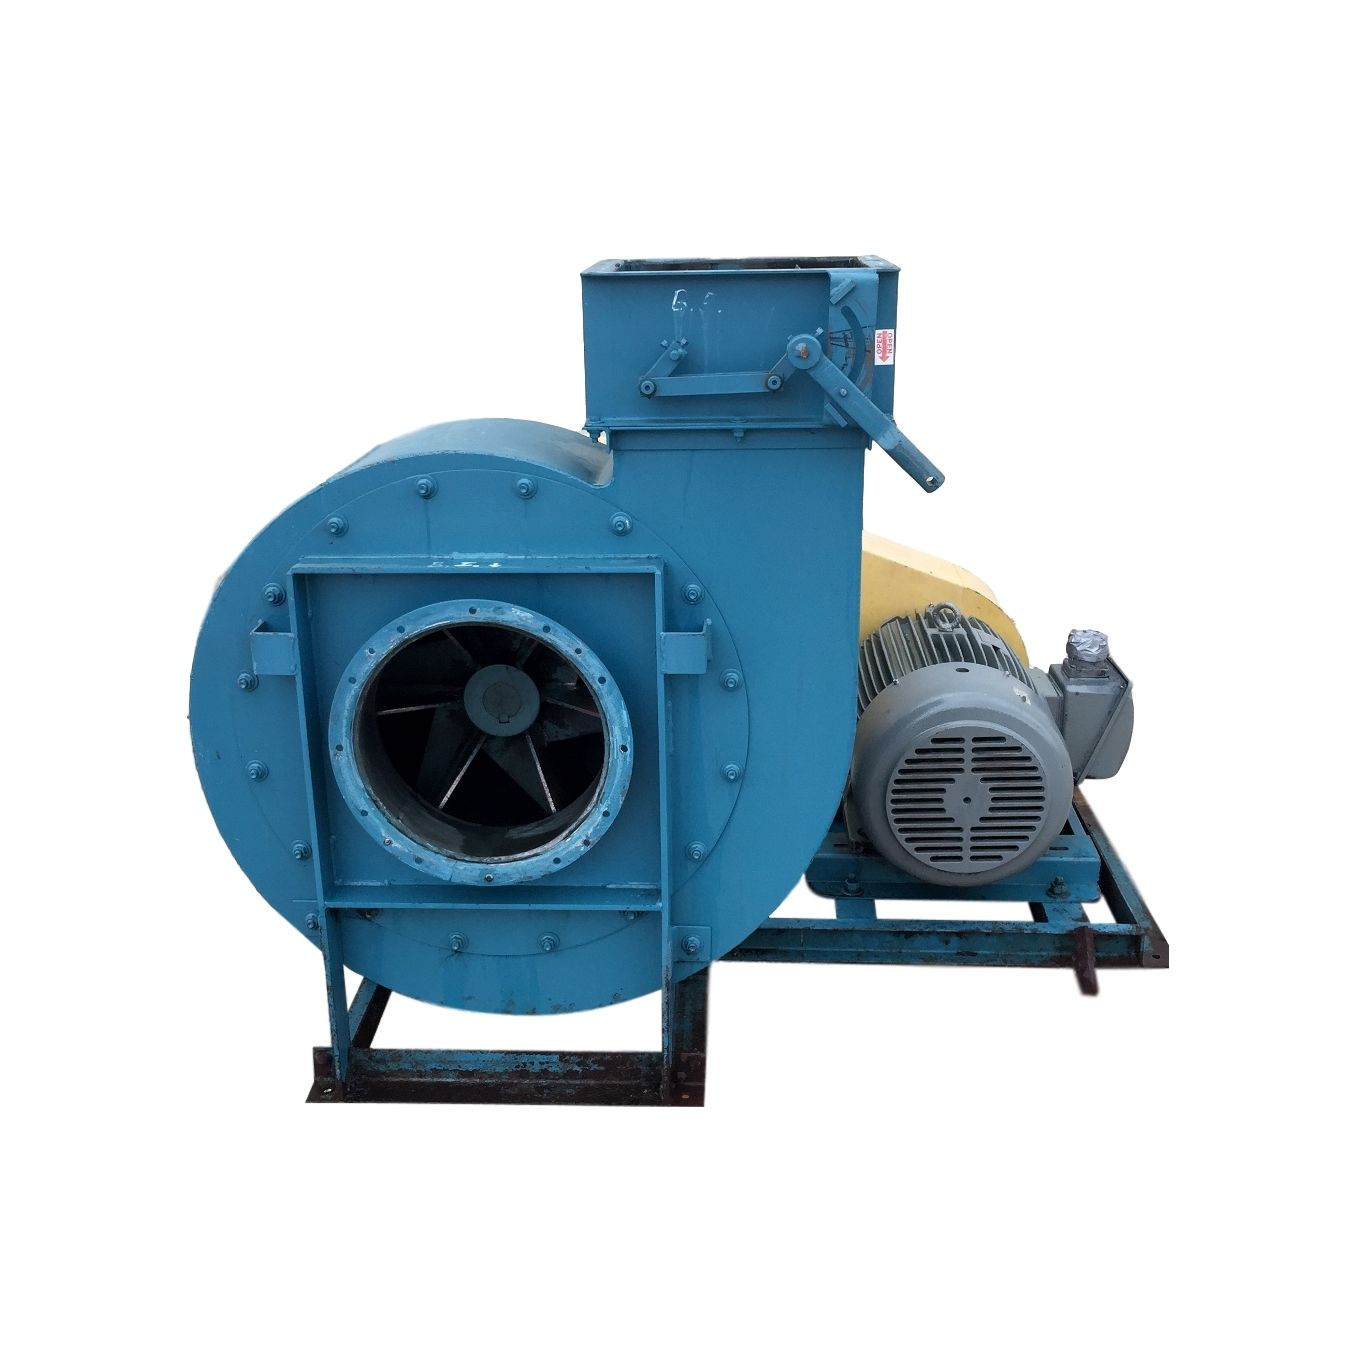 Centrifugal Fans And Blowers : Cfm quot sp twin city centrifugal fan rba